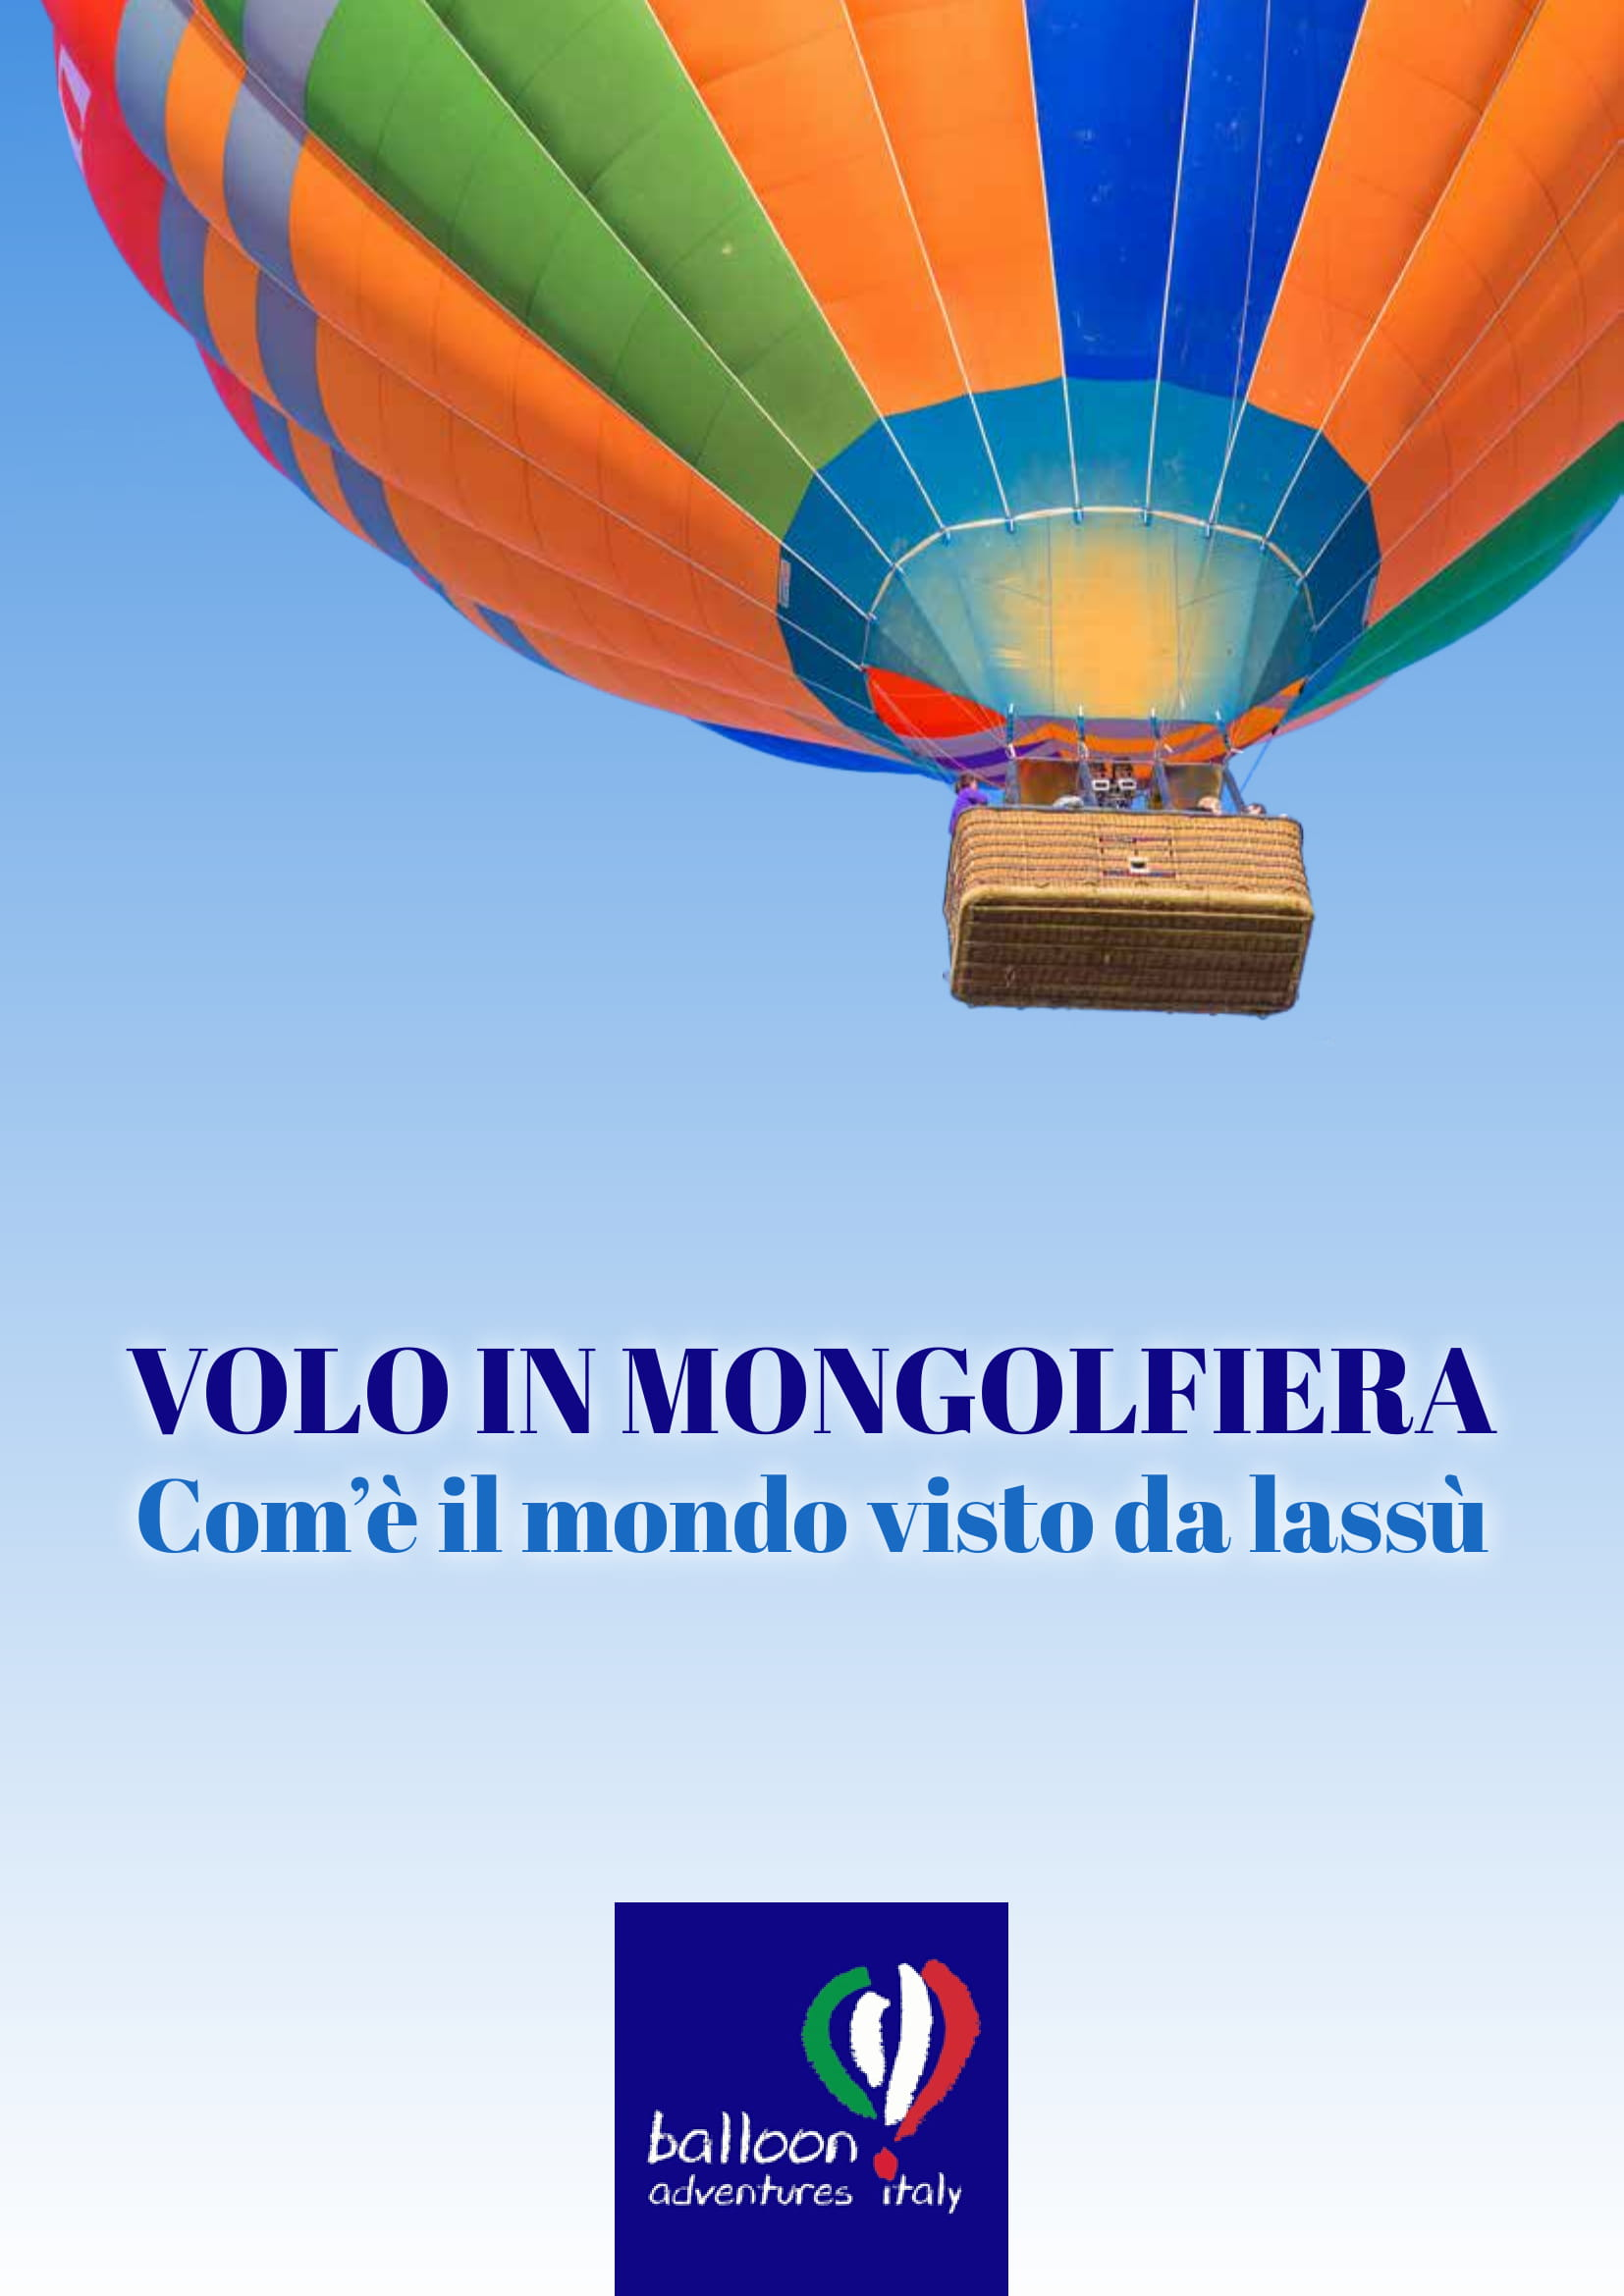 Volo-in-mongolfiera-e-book-Balloon-Adventures-Italy